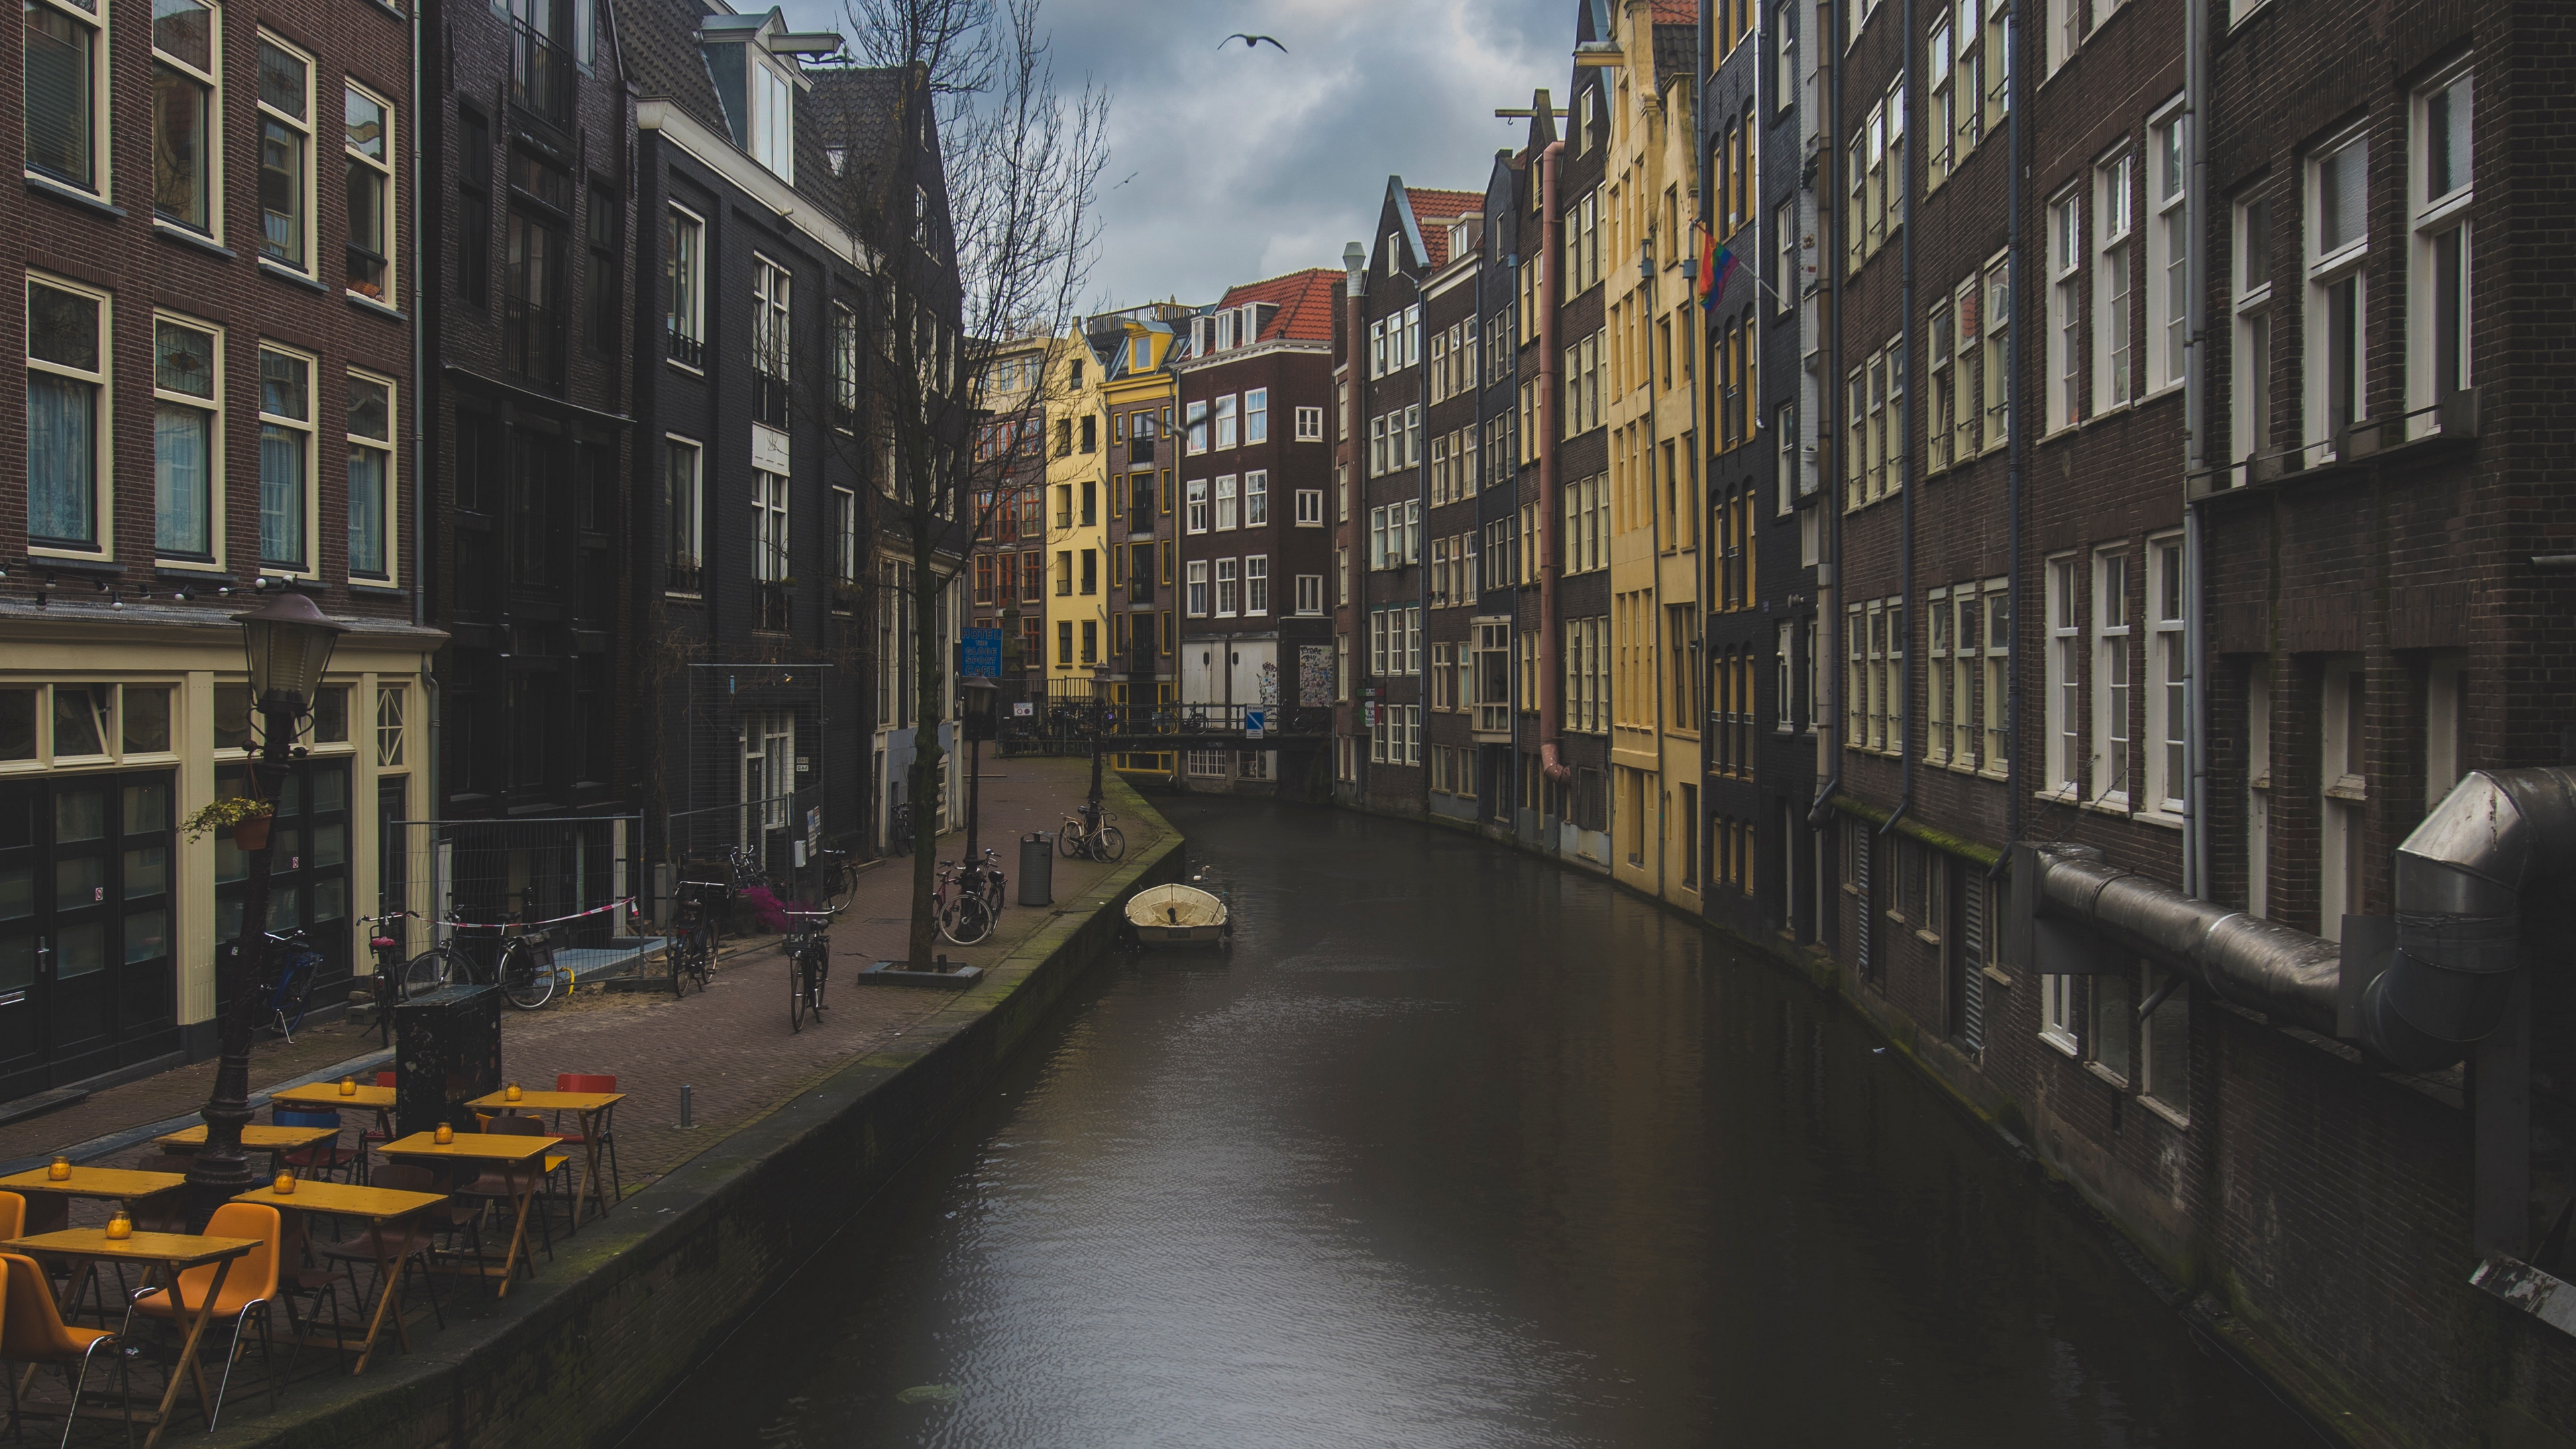 canal buildings architecture amsterdam netherlands 4k 1538066677 - canal, buildings, architecture, amsterdam, netherlands 4k - Canal, buildings, Architecture